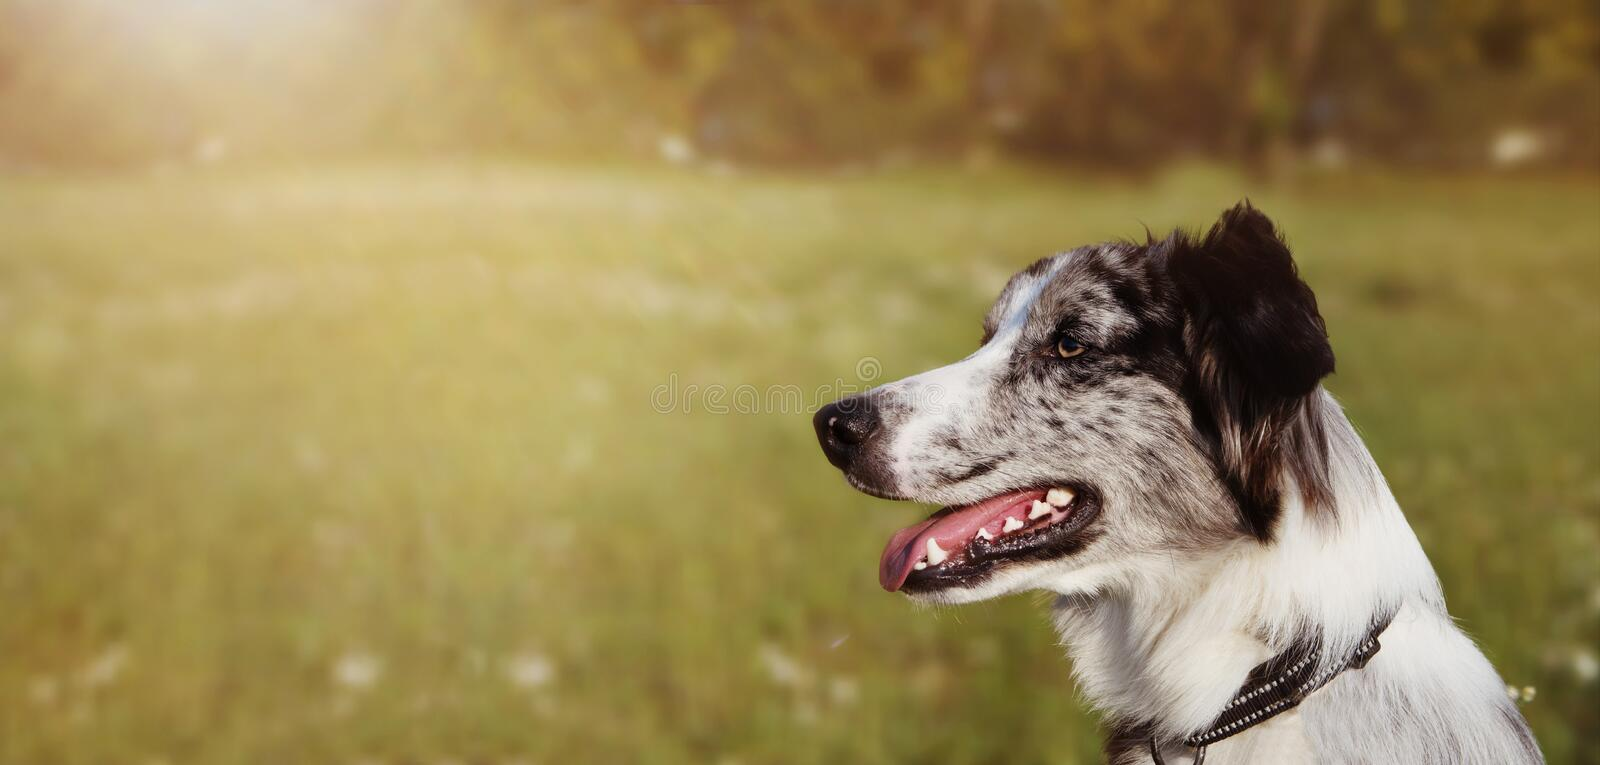 BANNER BORDER COLLIE SCOTTISH  DOG LOOKING SIDE IN GREEN GRASS. CLOSE-UP PORTRAIT WITH SUNSETLIGHT stock photos